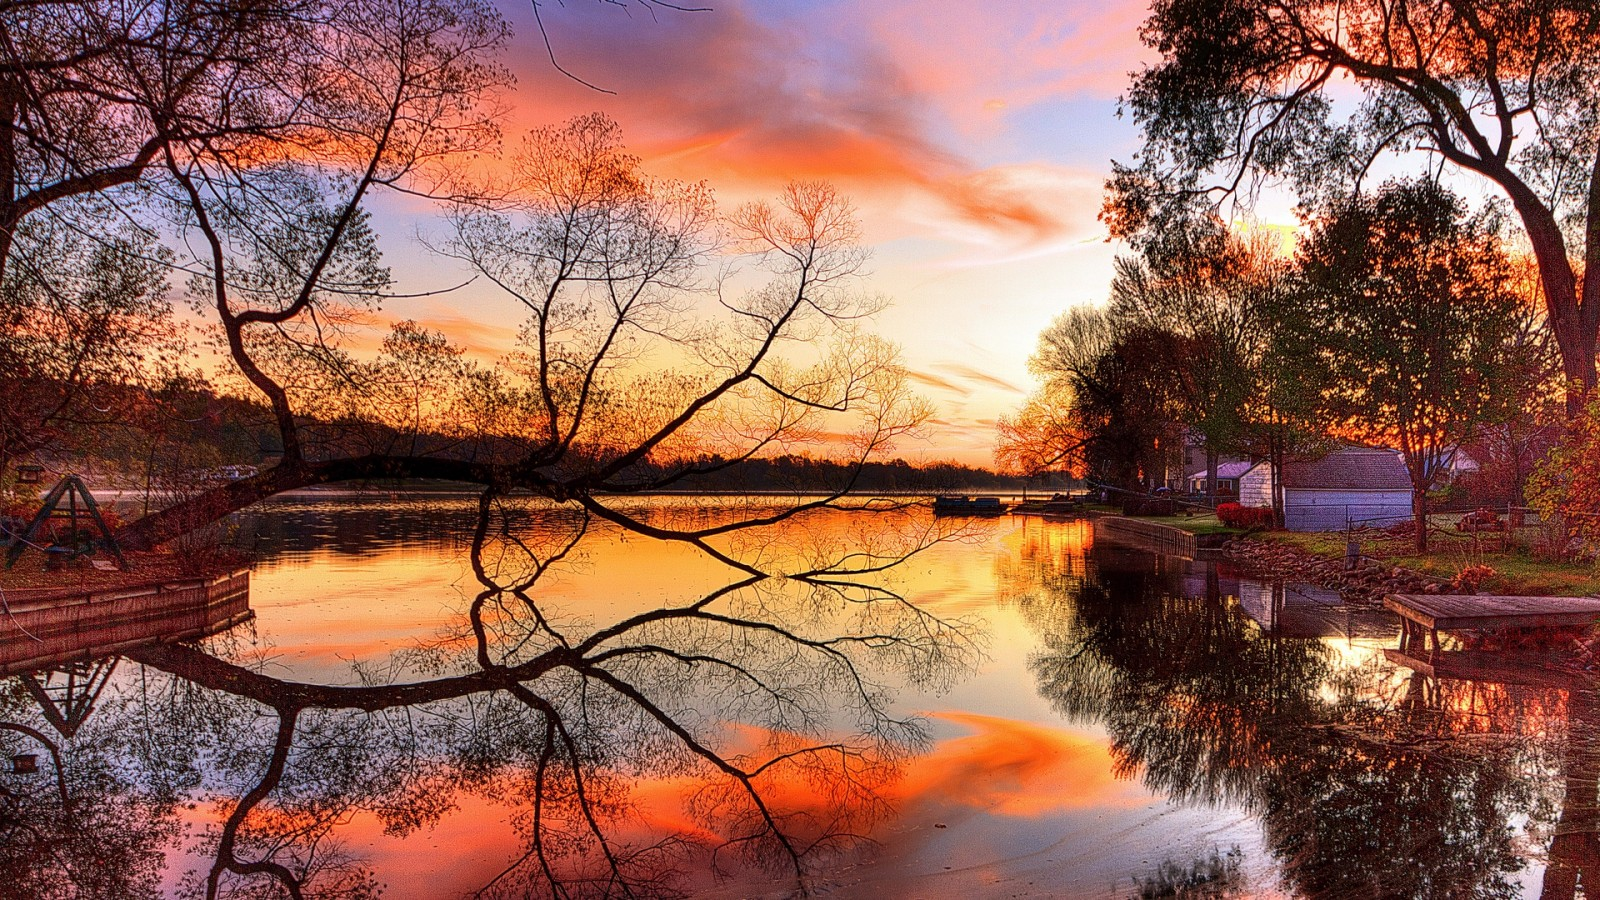 Night reflection at the lake HD Wallpaper